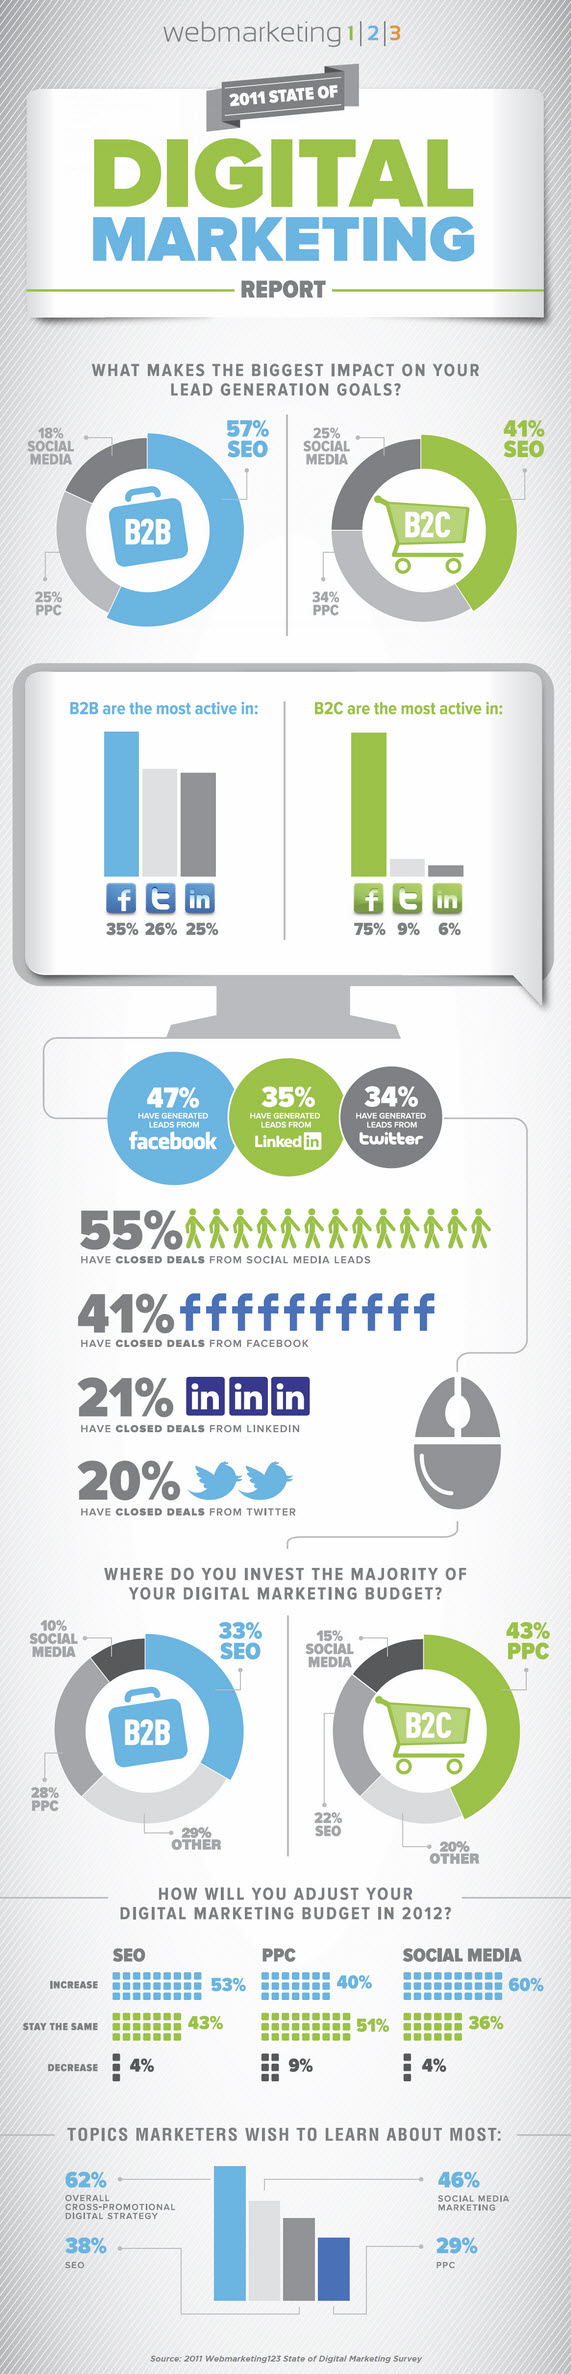 Digital-Marketing-Report-2011-infographic